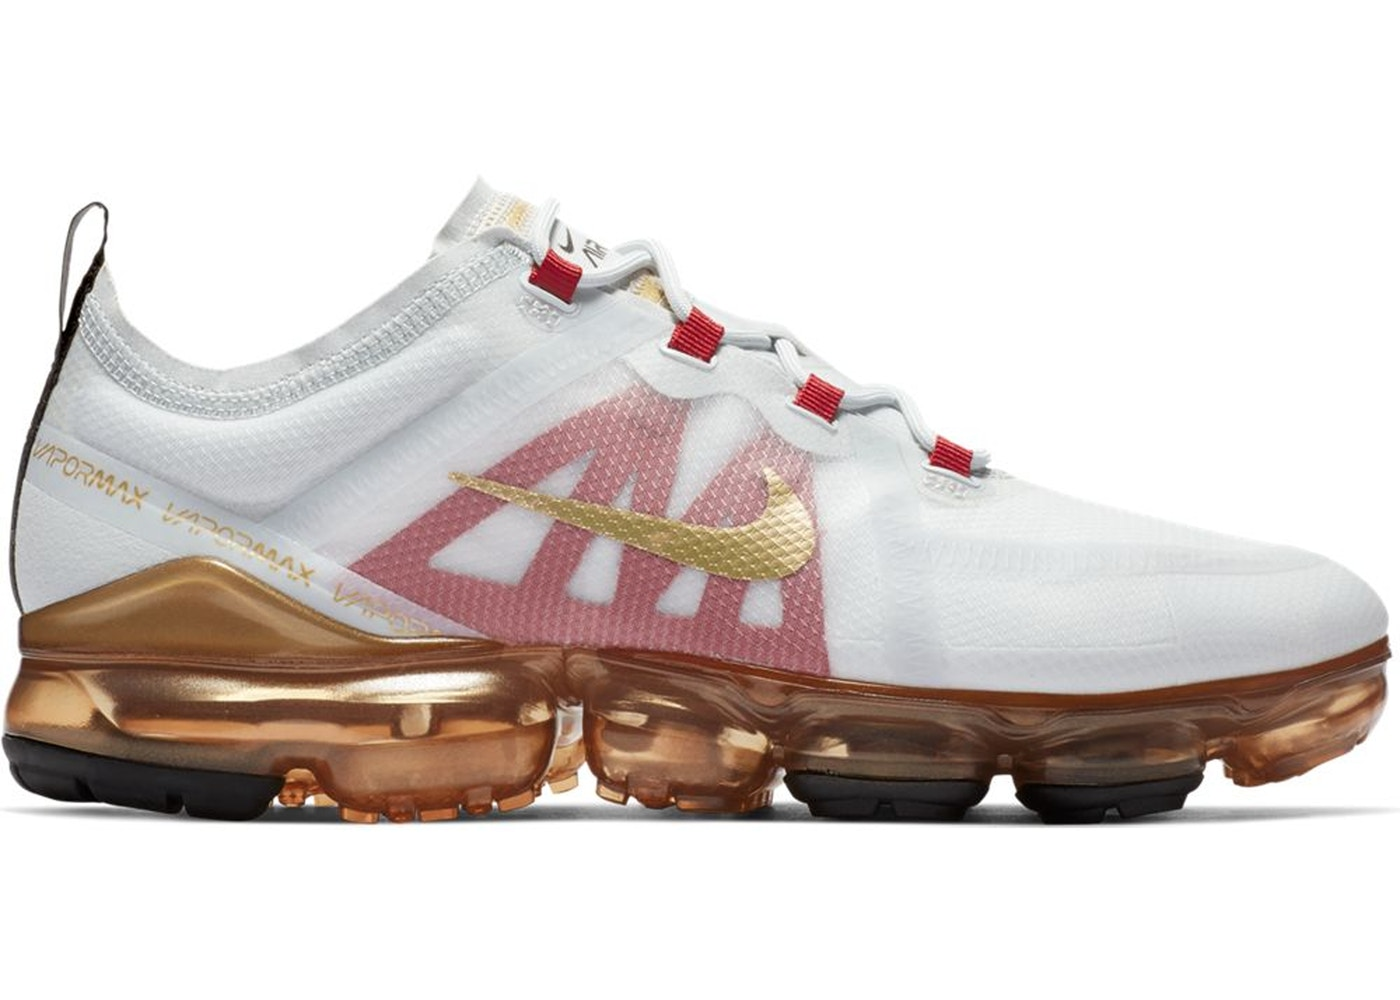 0a9cb7dca89 Air VaporMax 2019 Chinese New Year 2019 Pure Platinum - BQ7038-001